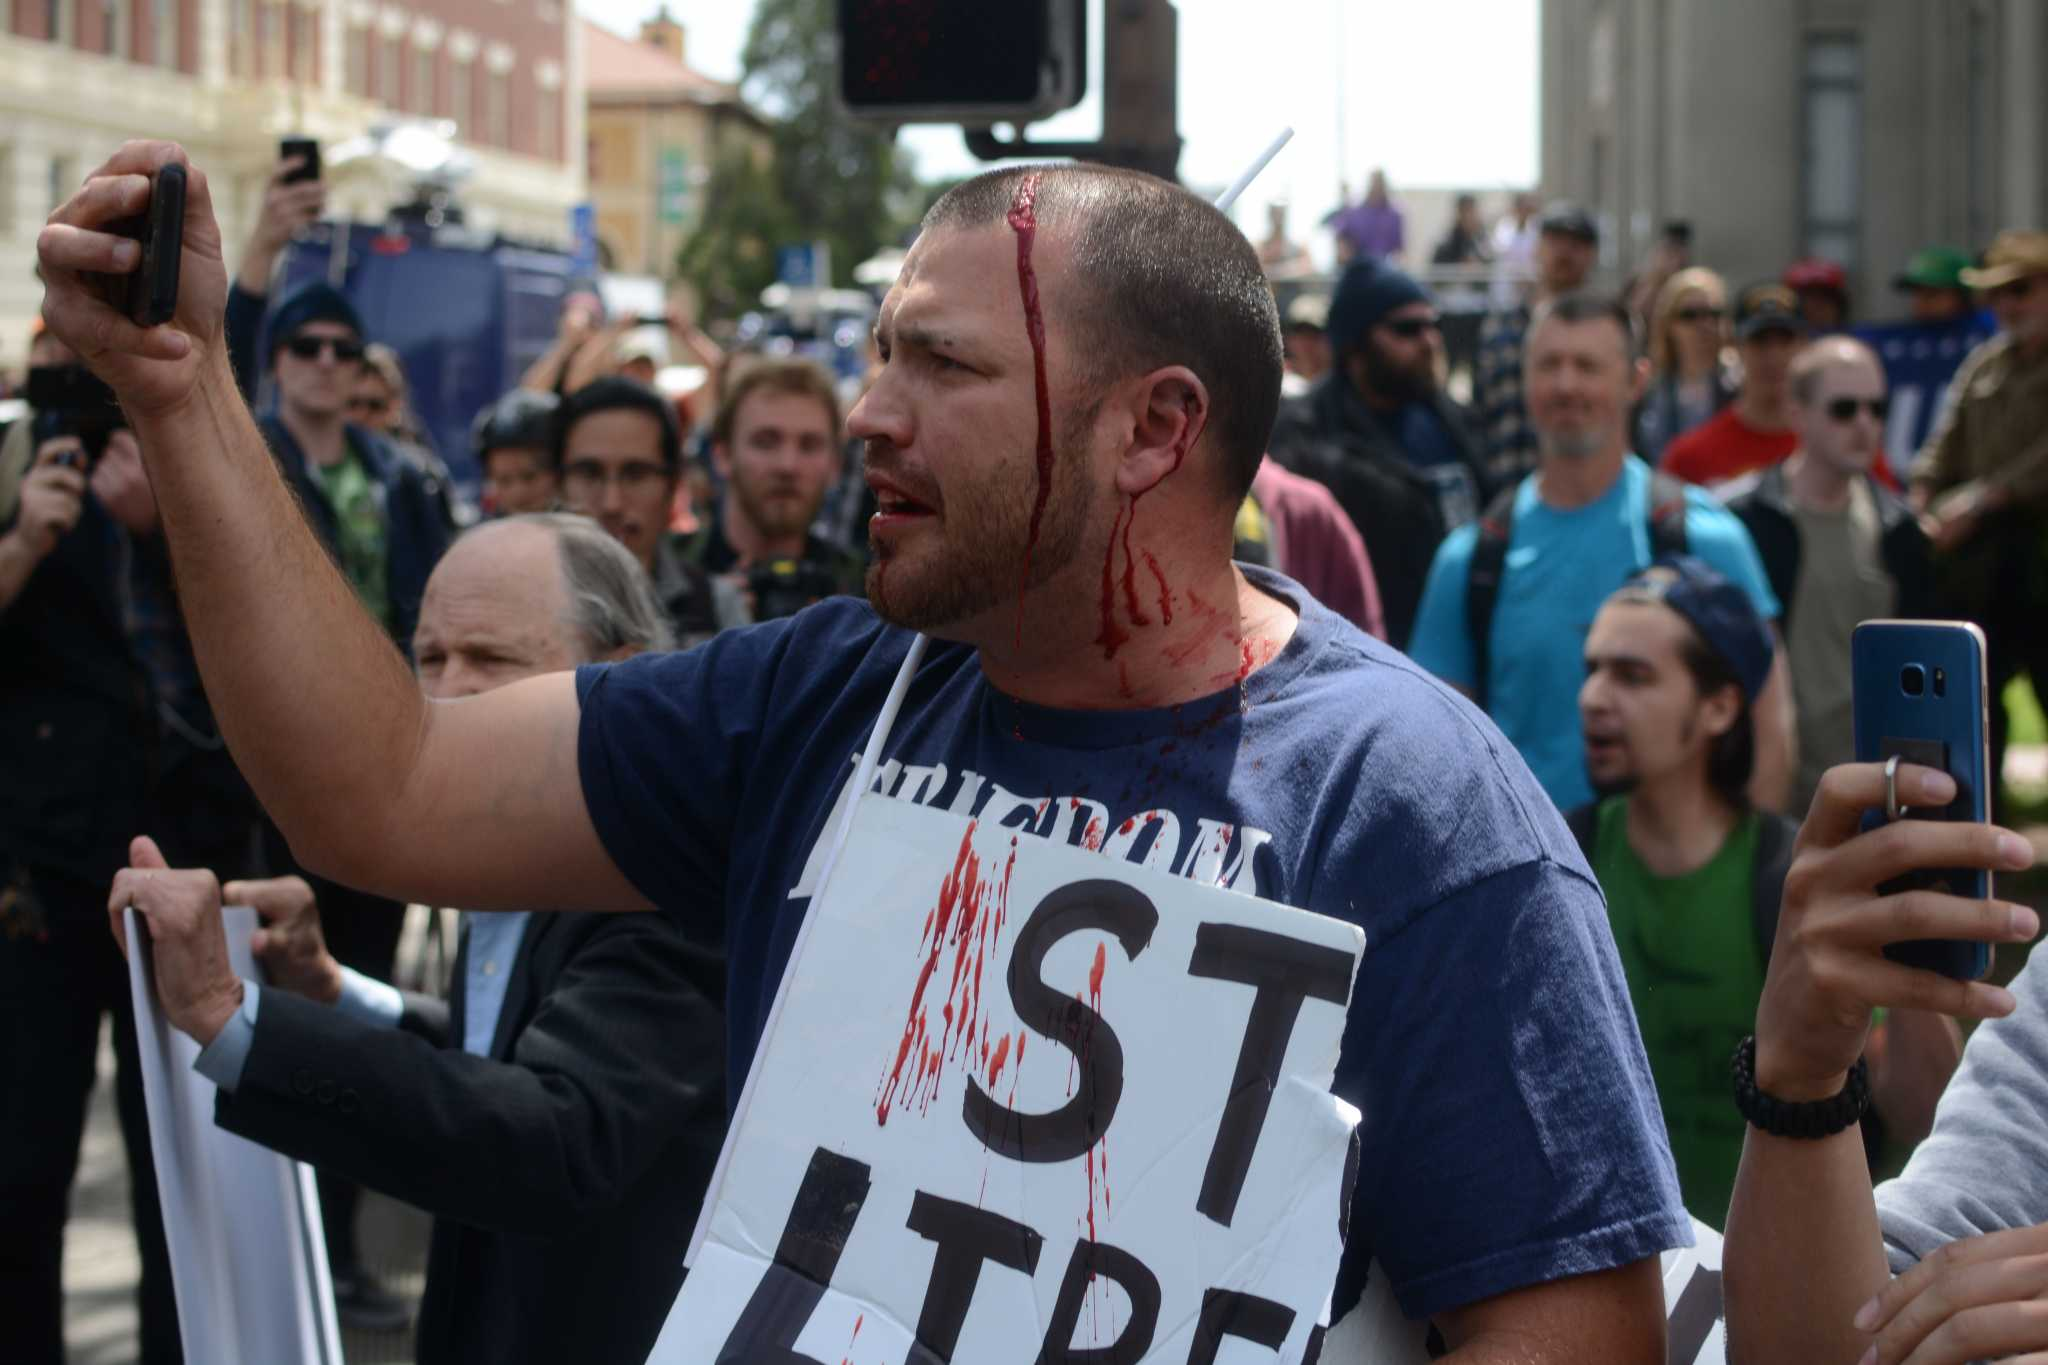 A bleeding right-wing protester records video of himself at the corner of Center and Milvia Streets in Berkeley, Calif. on Saturday, Apr. 15, 2017. Antifa anarchists and alt-right groups clashed in a riot Saturday (Aaron Levy-Wolins/ Xpress).